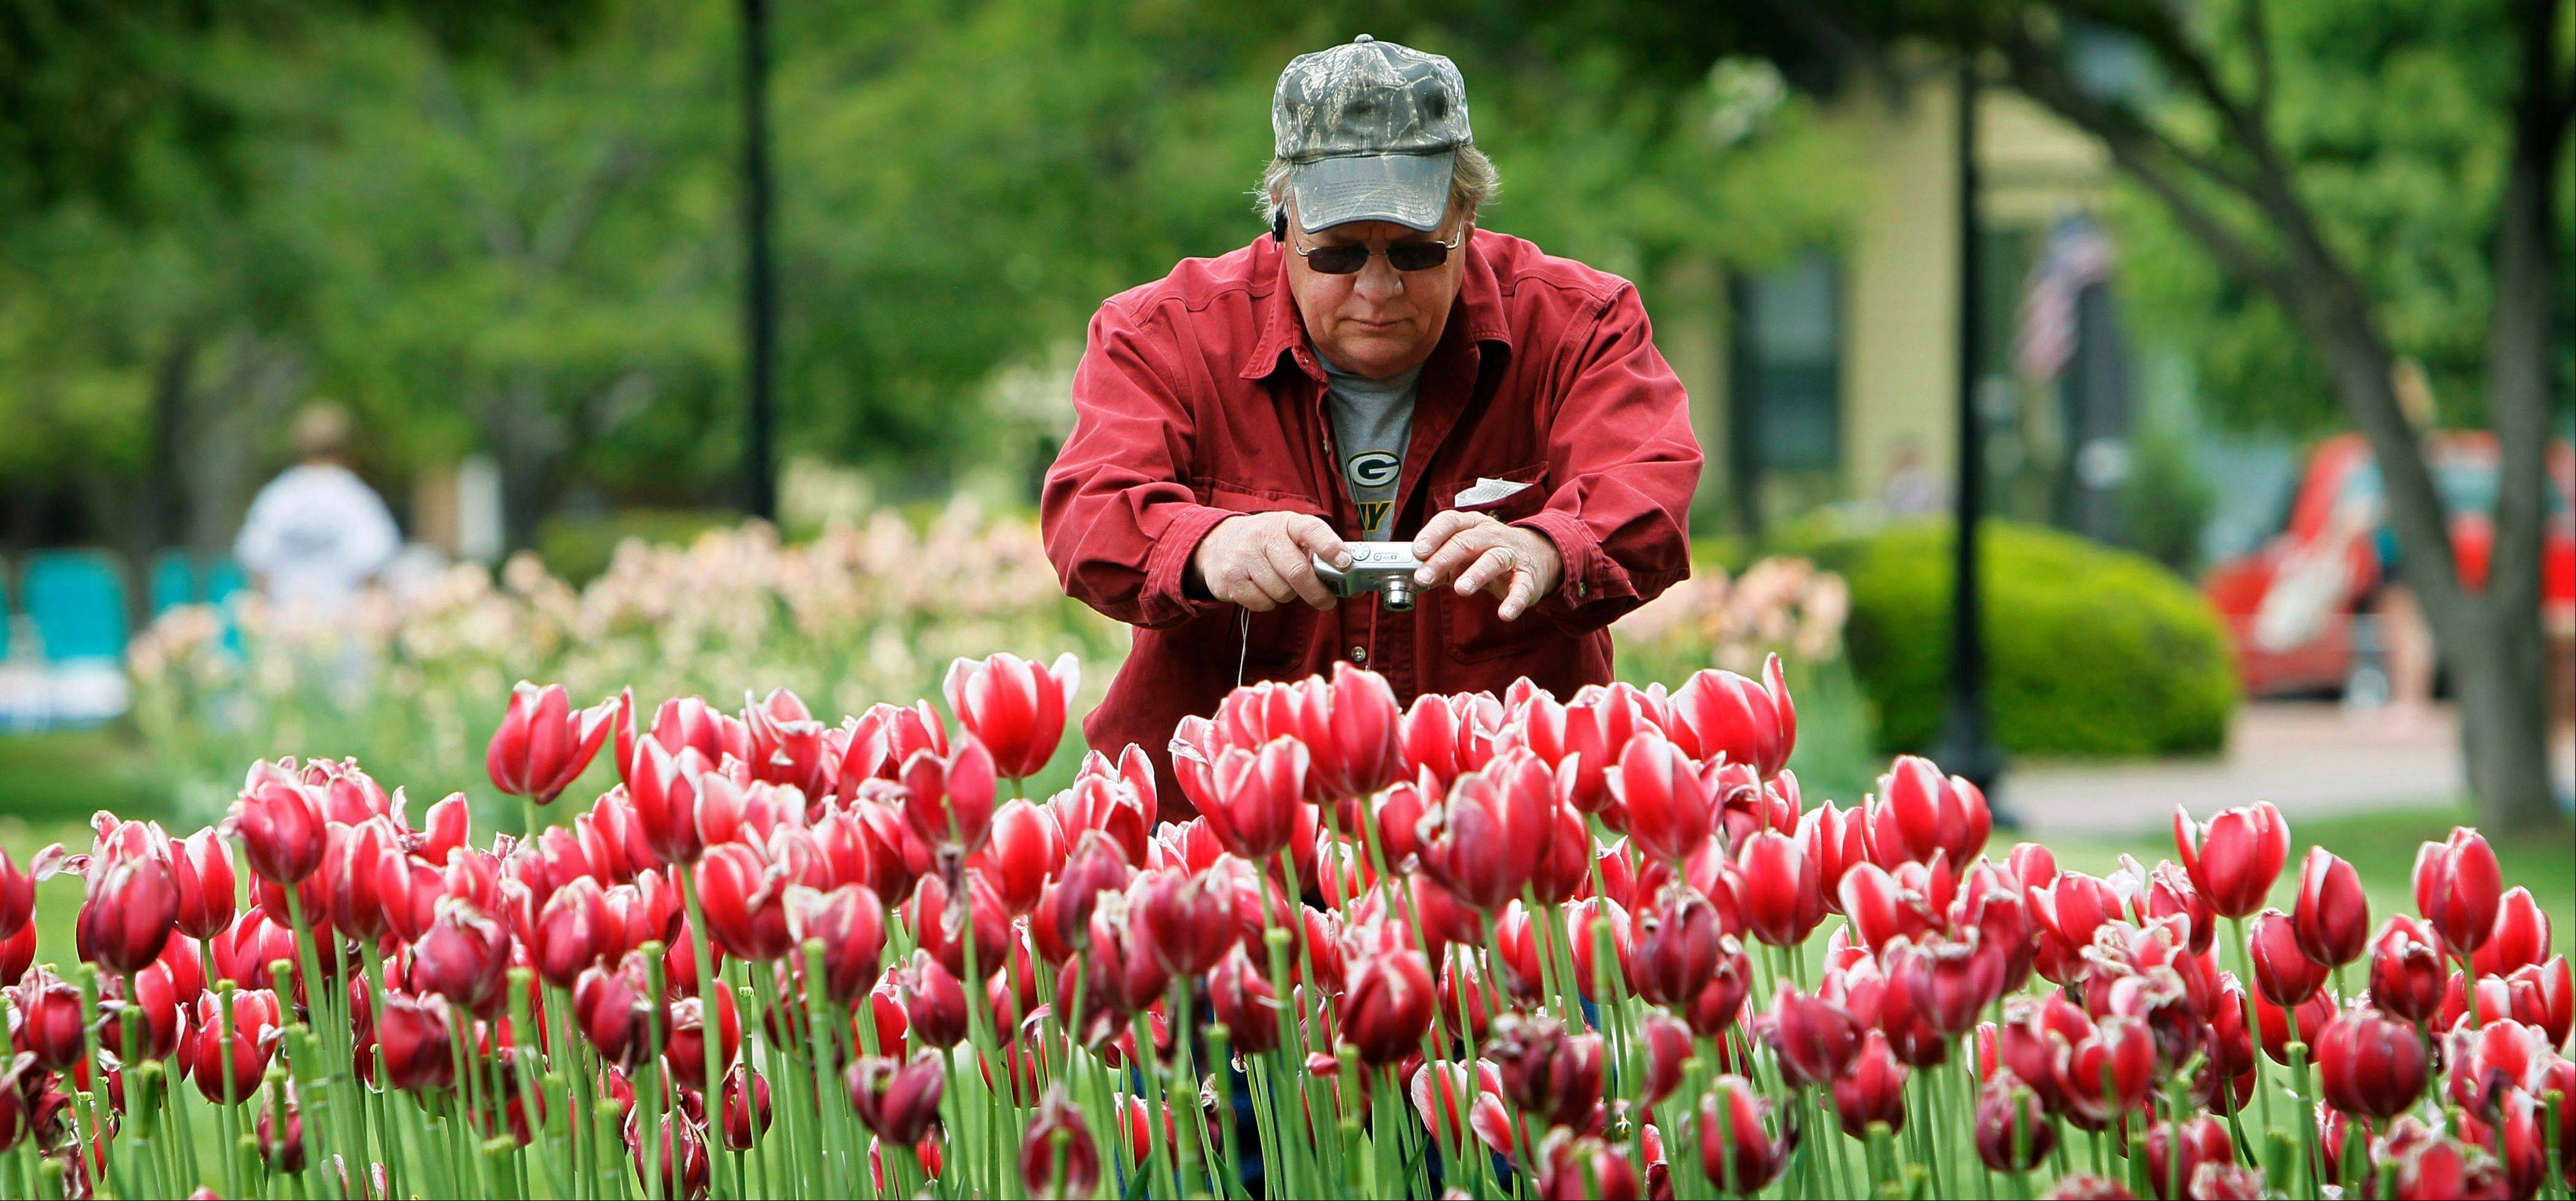 Bud Moe, of Barron, Wis., takes pictures of tulips on display during the annual Pella Tulip Time festival in Pella, Iowa.